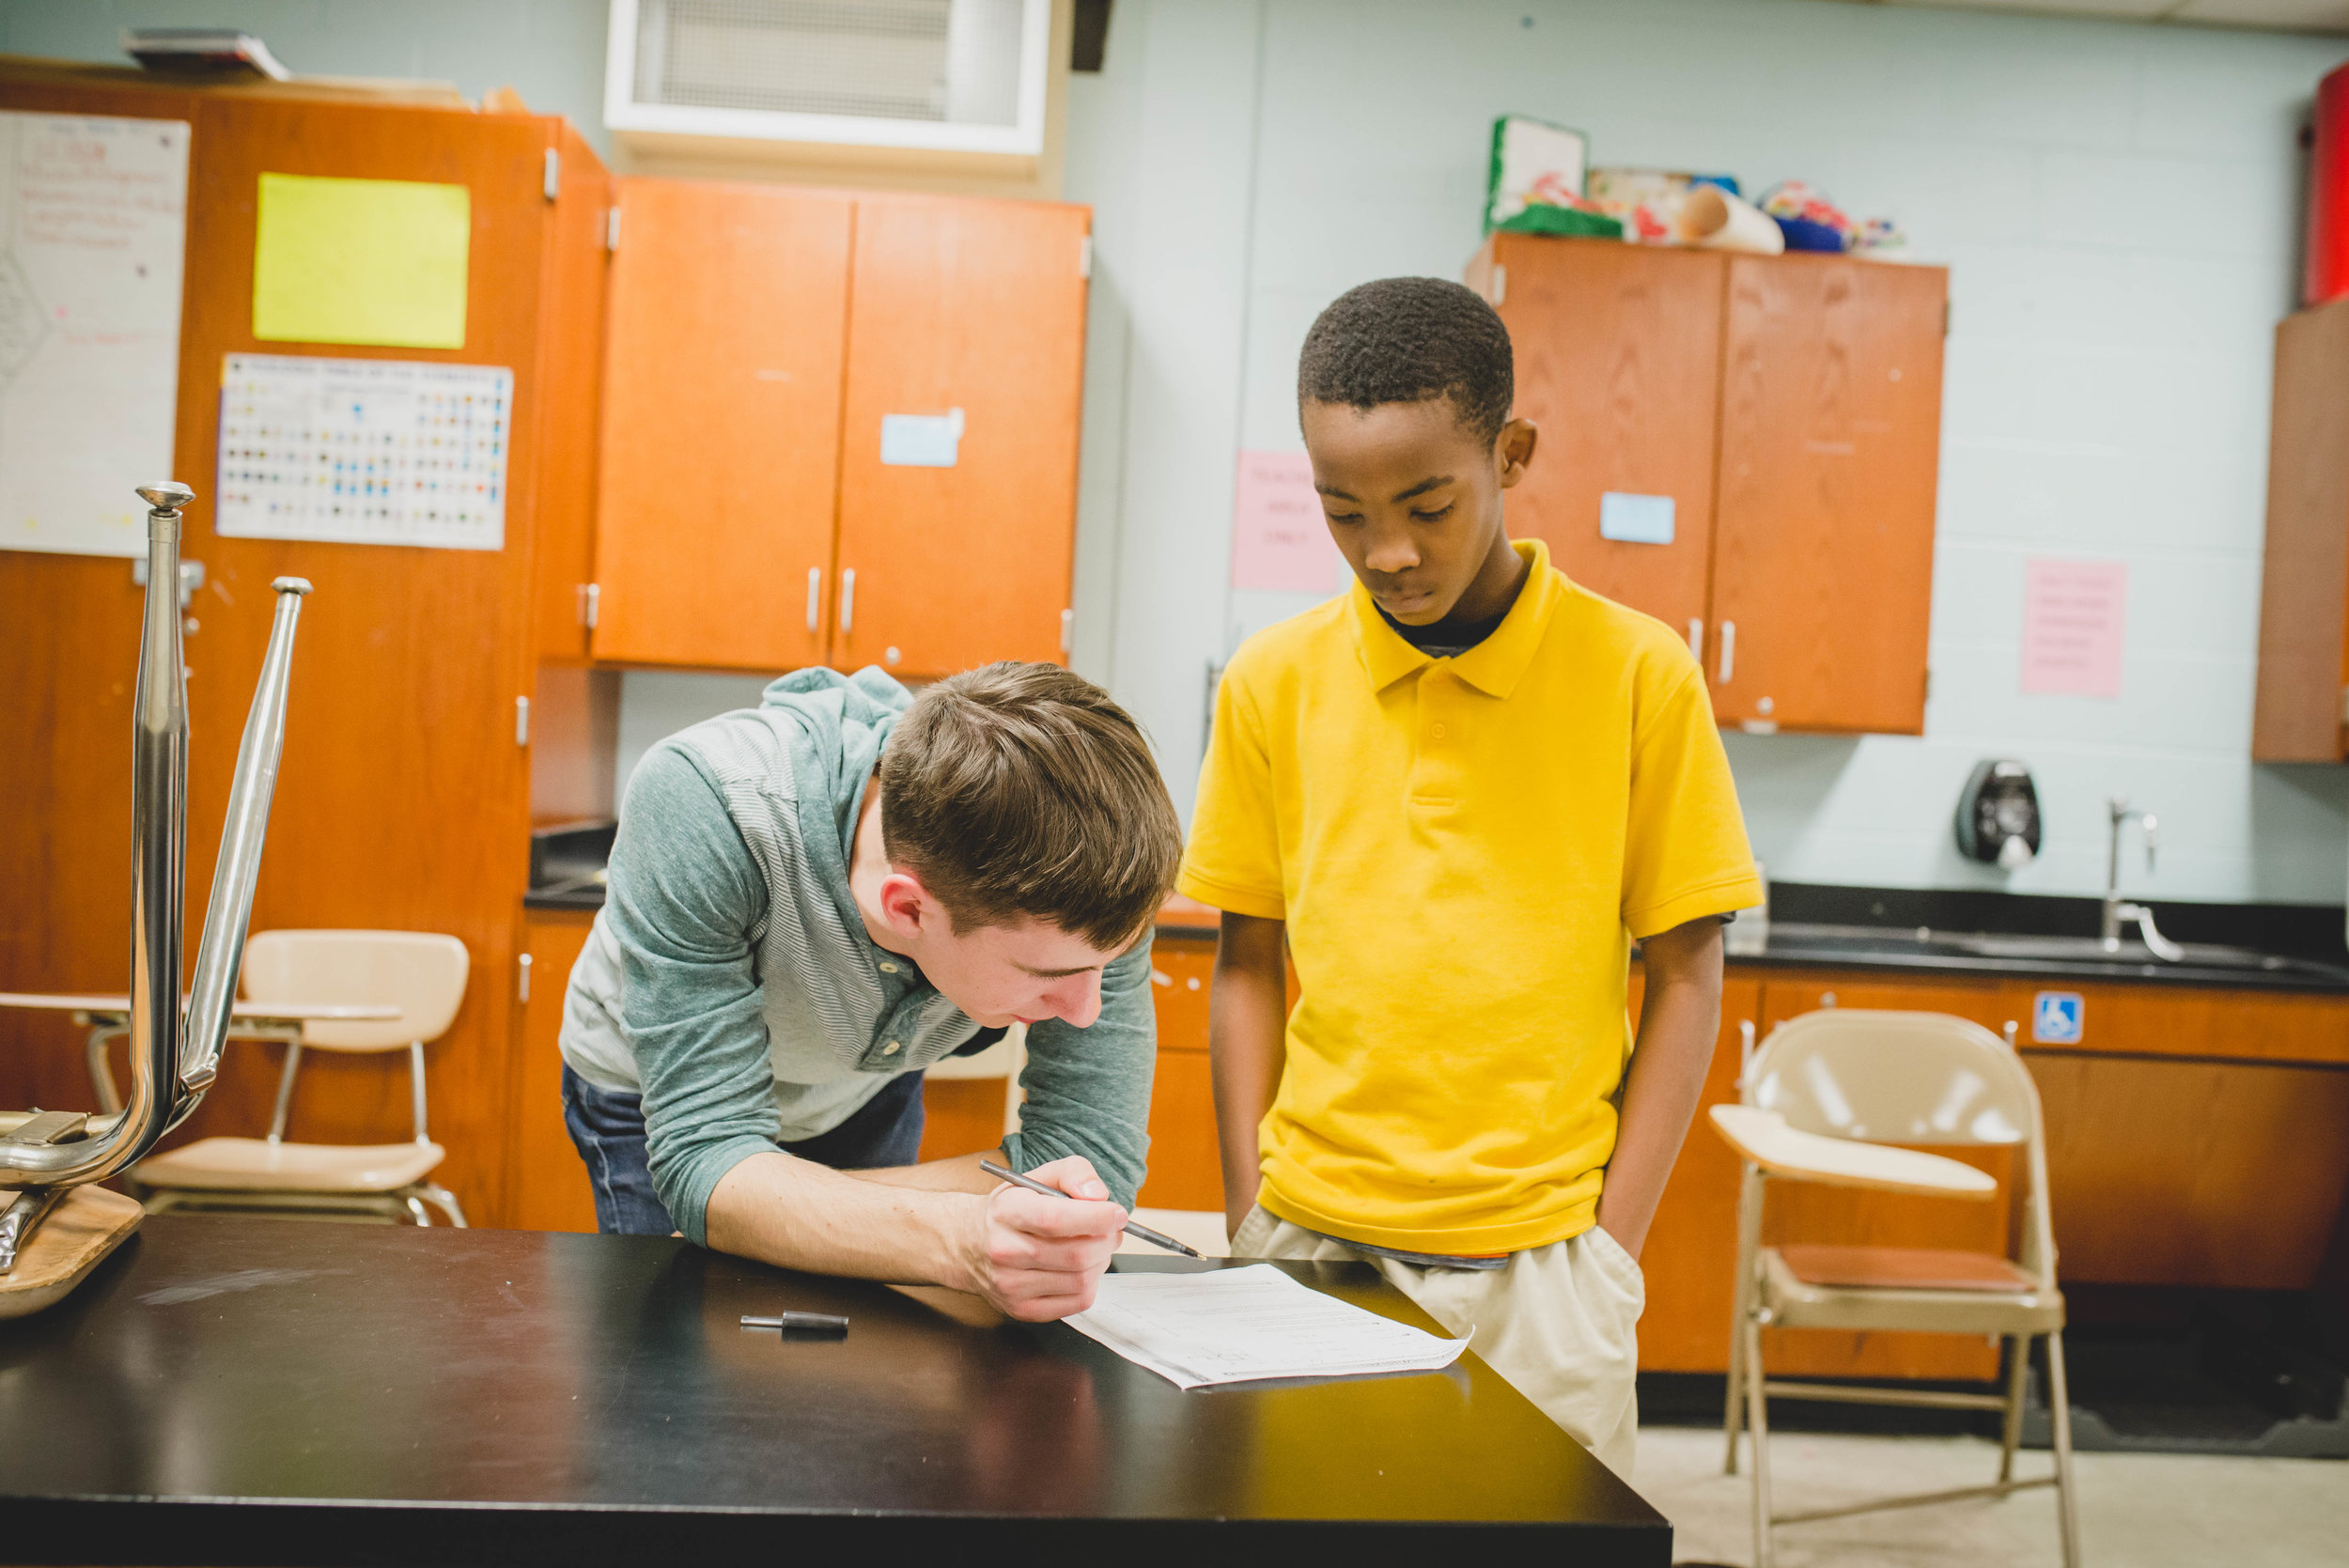 Whether its helping students through homework, mediating a conflict, or listening to their multitude of stories, CASE provides countless opportunities to speak into students' lives and encourage them.